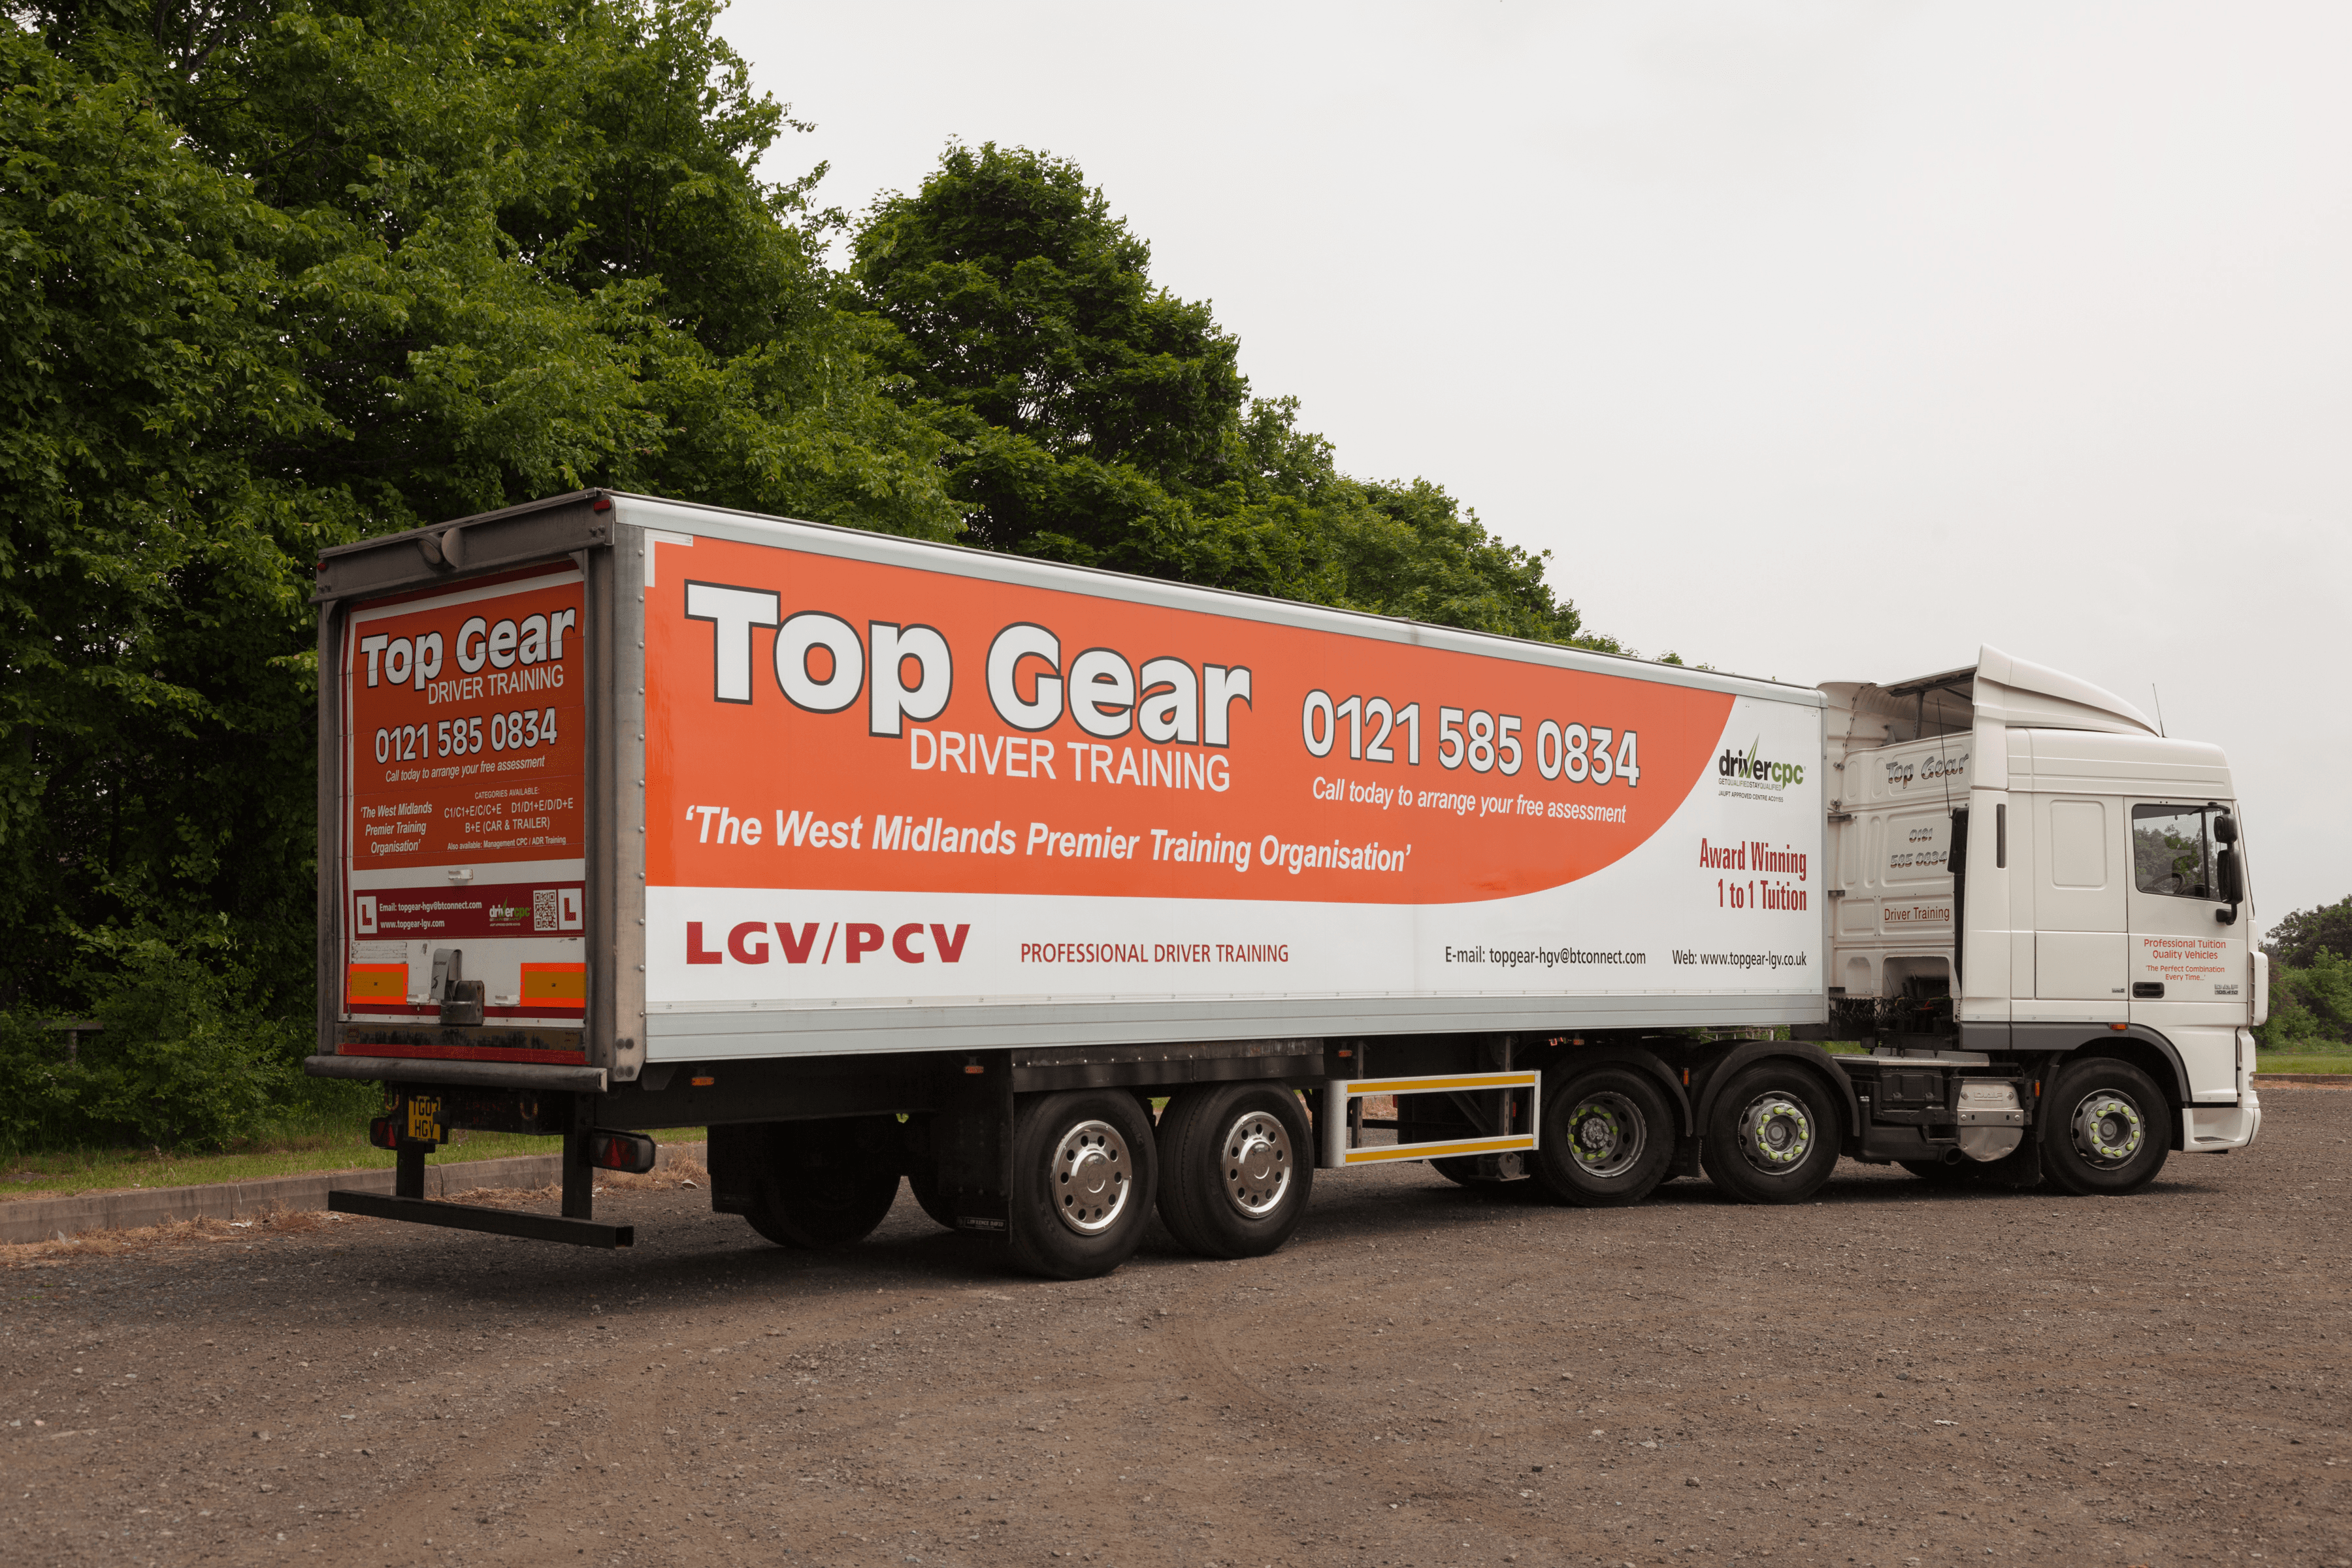 Top Gear training articulated lorry